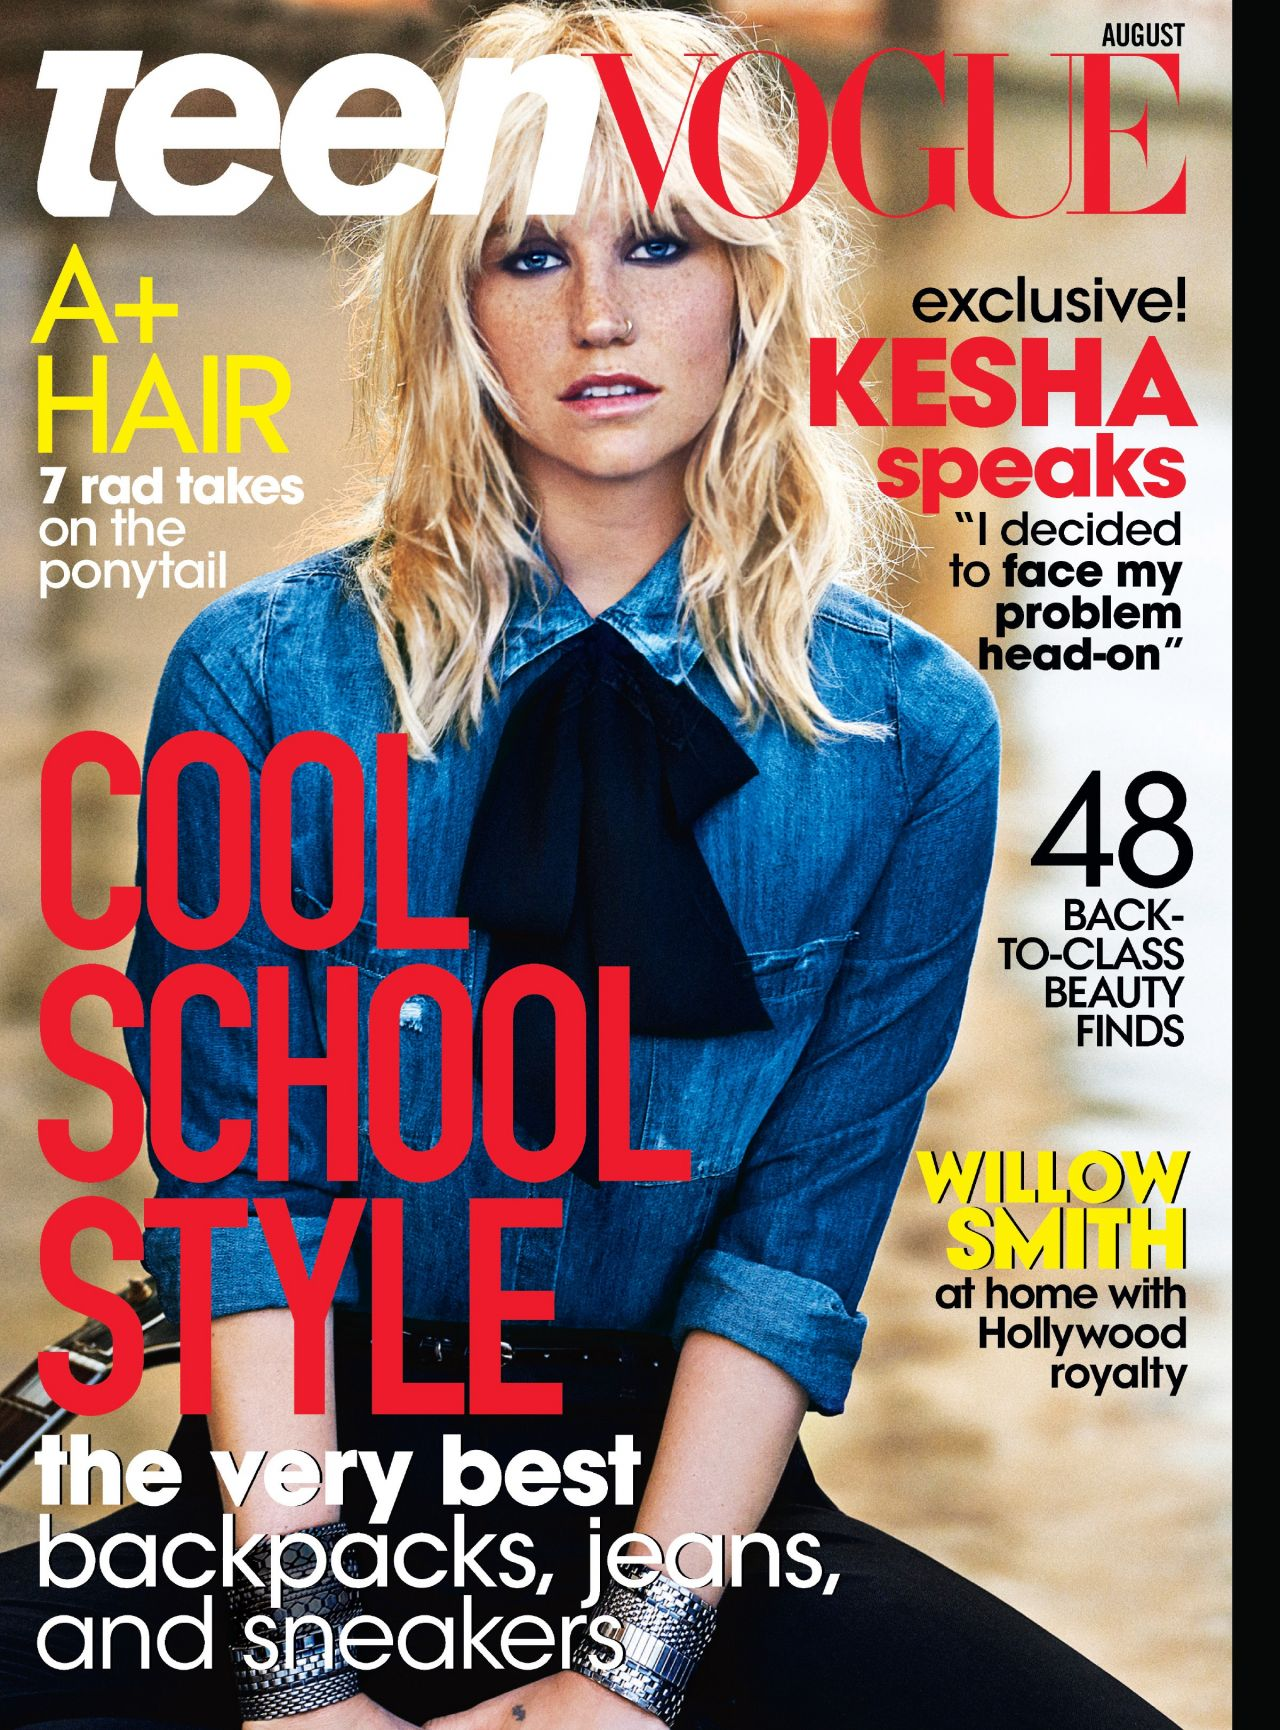 kesha-teen-vogue-magazine-august-2014_1.jpg